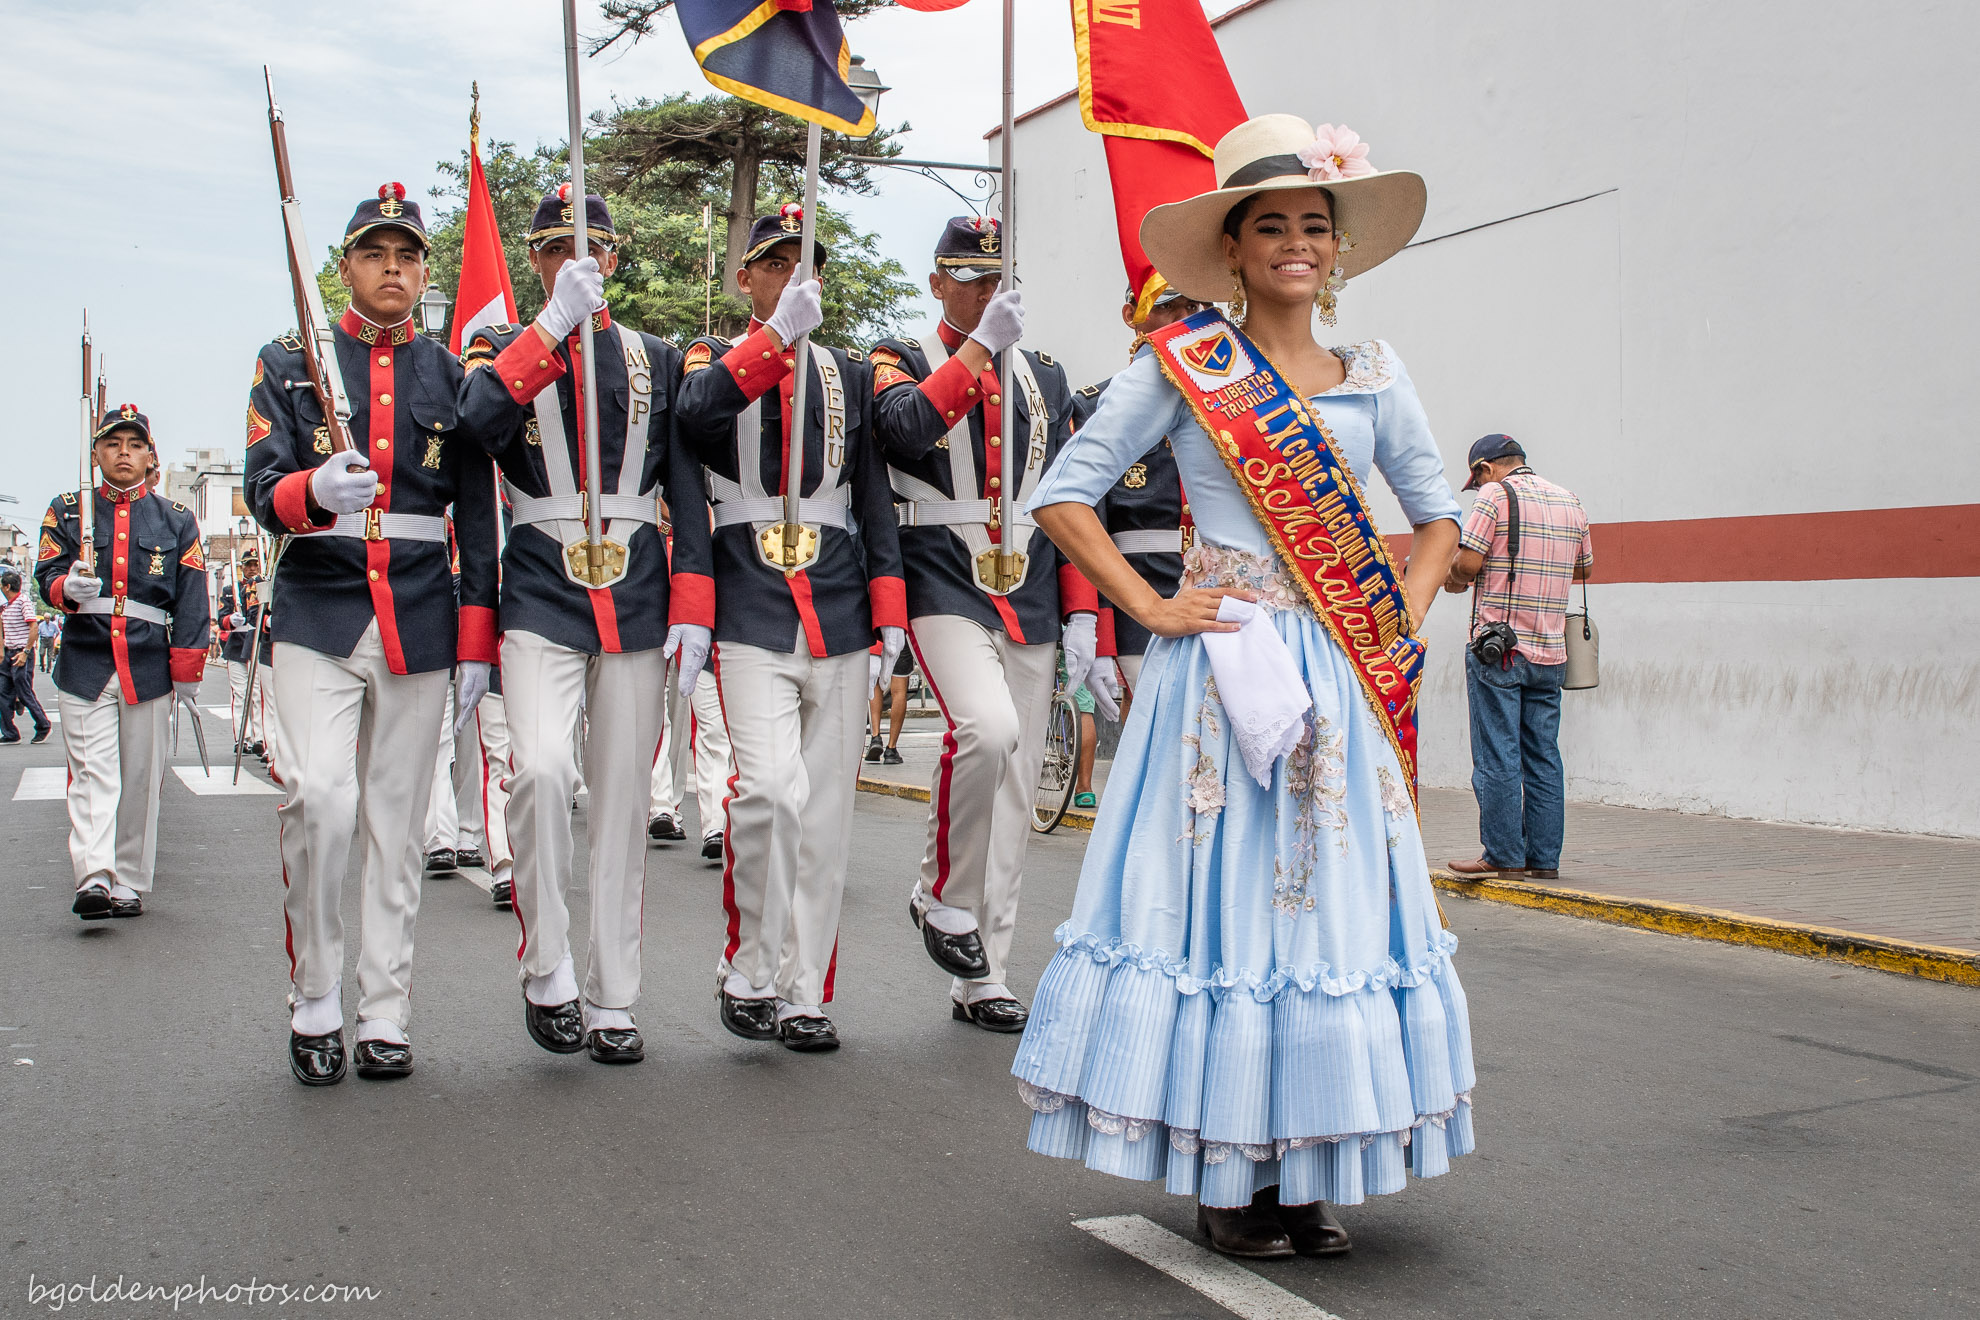 The Queen of the Marinera Festival in Trujillo Peru with Guard of Honour